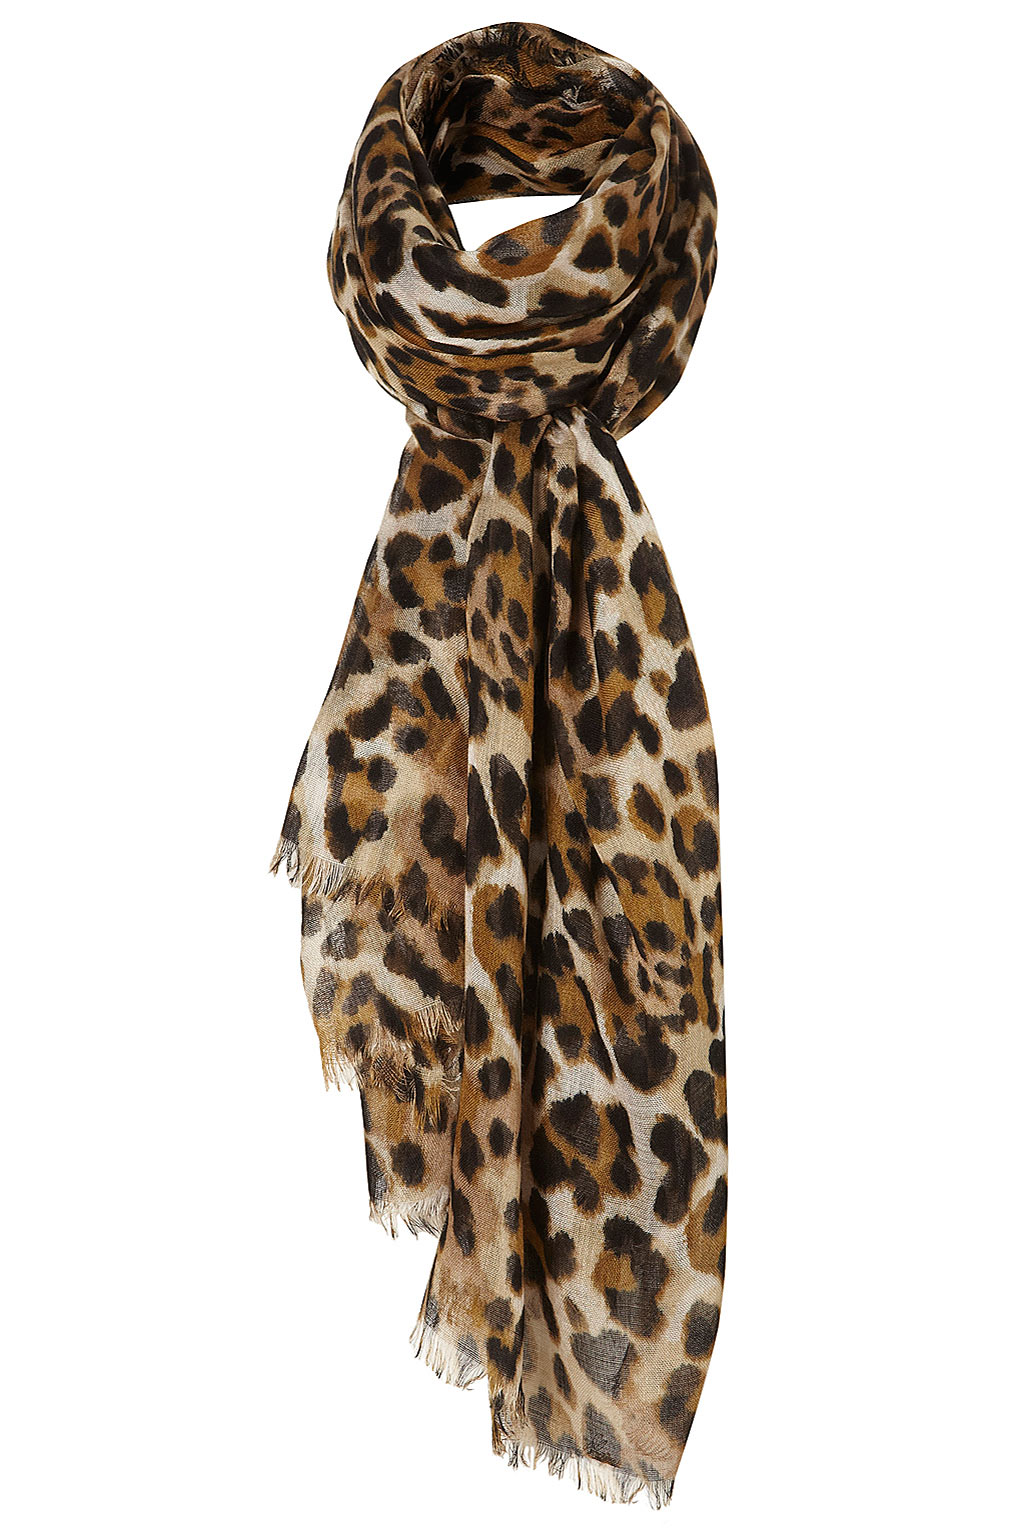 5 Ways to Wear a Leopard Print Scarf this Fall Amelia Ways to wear 16 Comments Leopard Print is a classic and a great way to add a bit of edge and interest to a basic outfit, particularly for this season with cat-inspired fashion being everywhere.